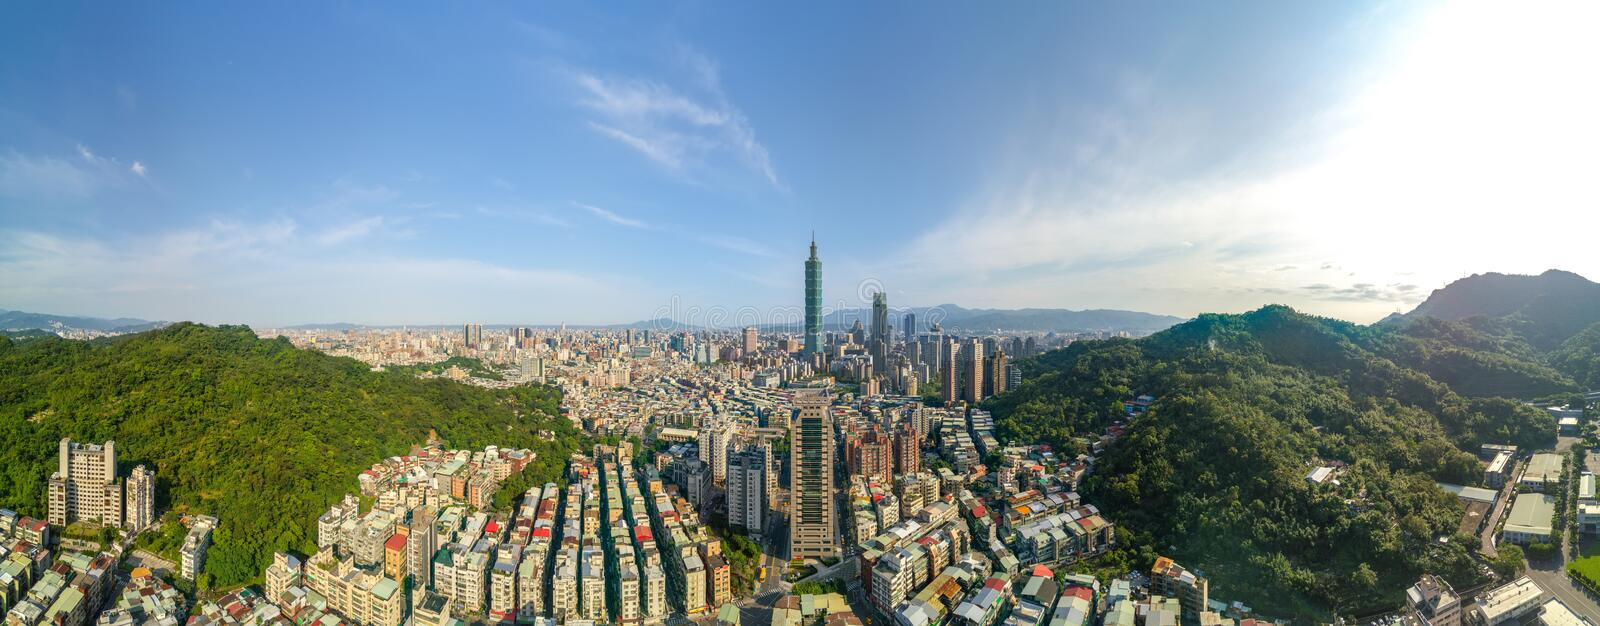 Aerial view of Panoramic photo of city scape stock photography